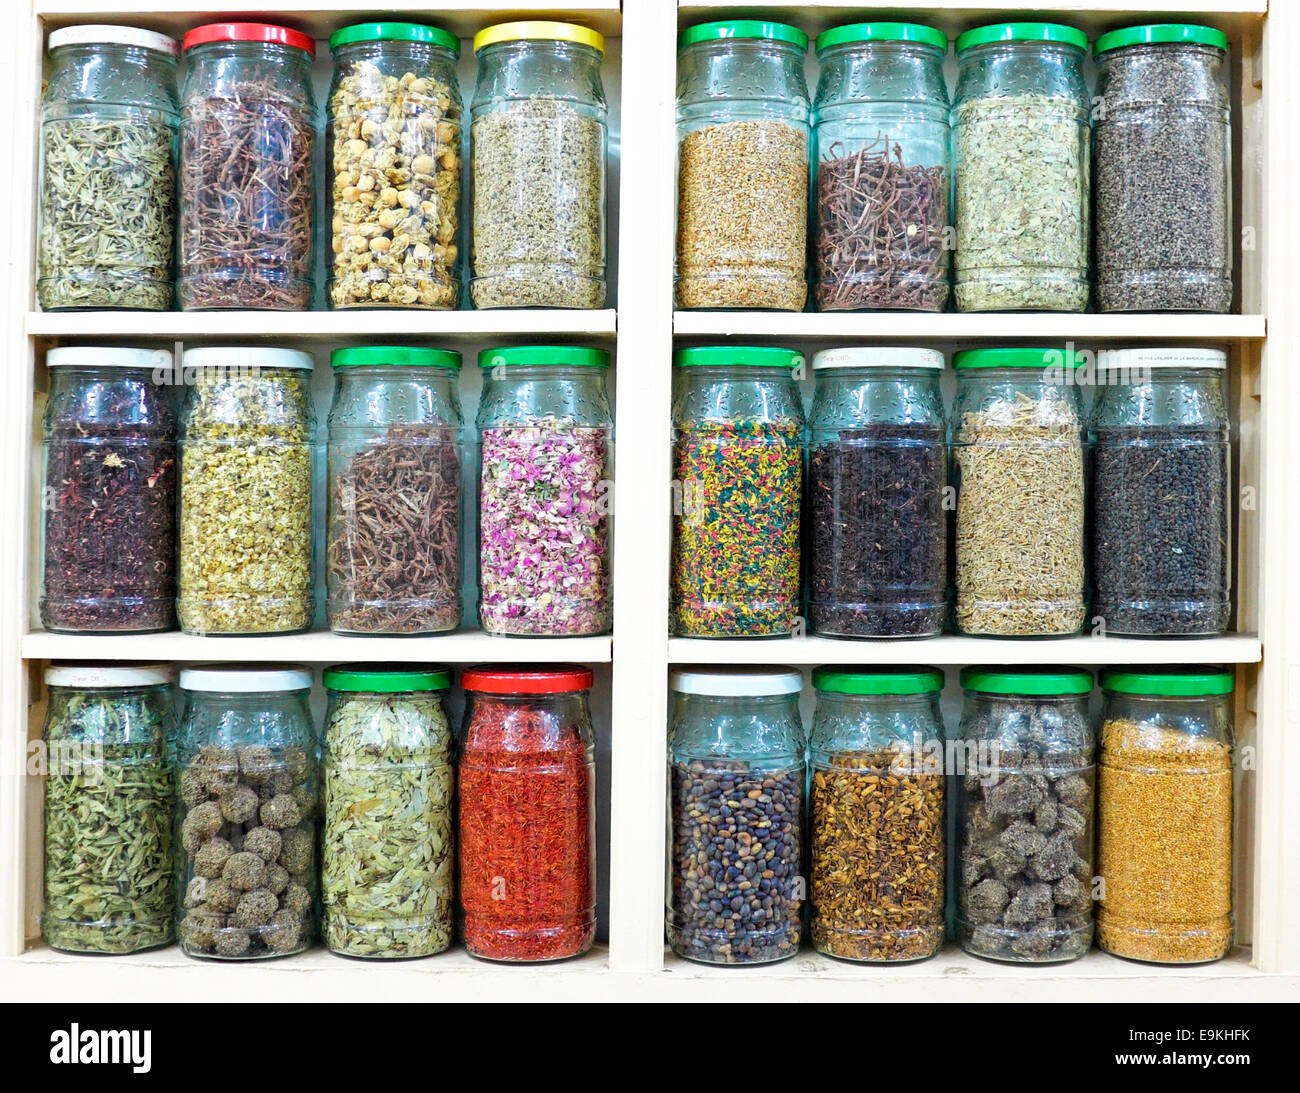 assortment of glass jars on shelves in herbalist shop in marrakesh, morocco, containing herbs and spices for medicinal Stock Photo